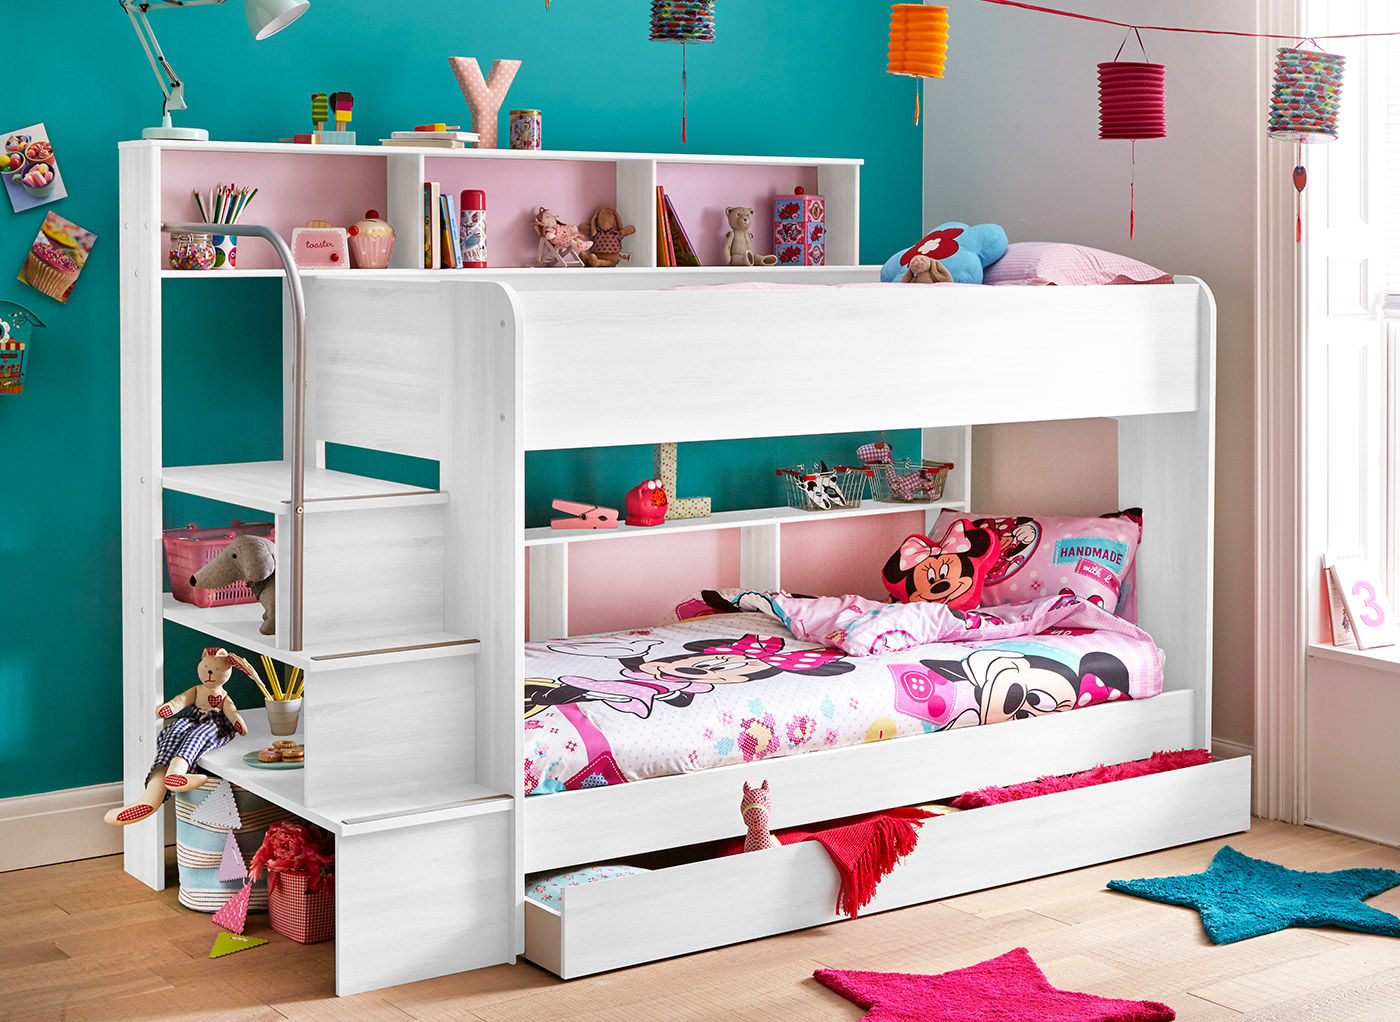 Collection childrens bunk beds full size of bunk beds:kids furniture in los angeles bobu0027s bunk beds for tahozae